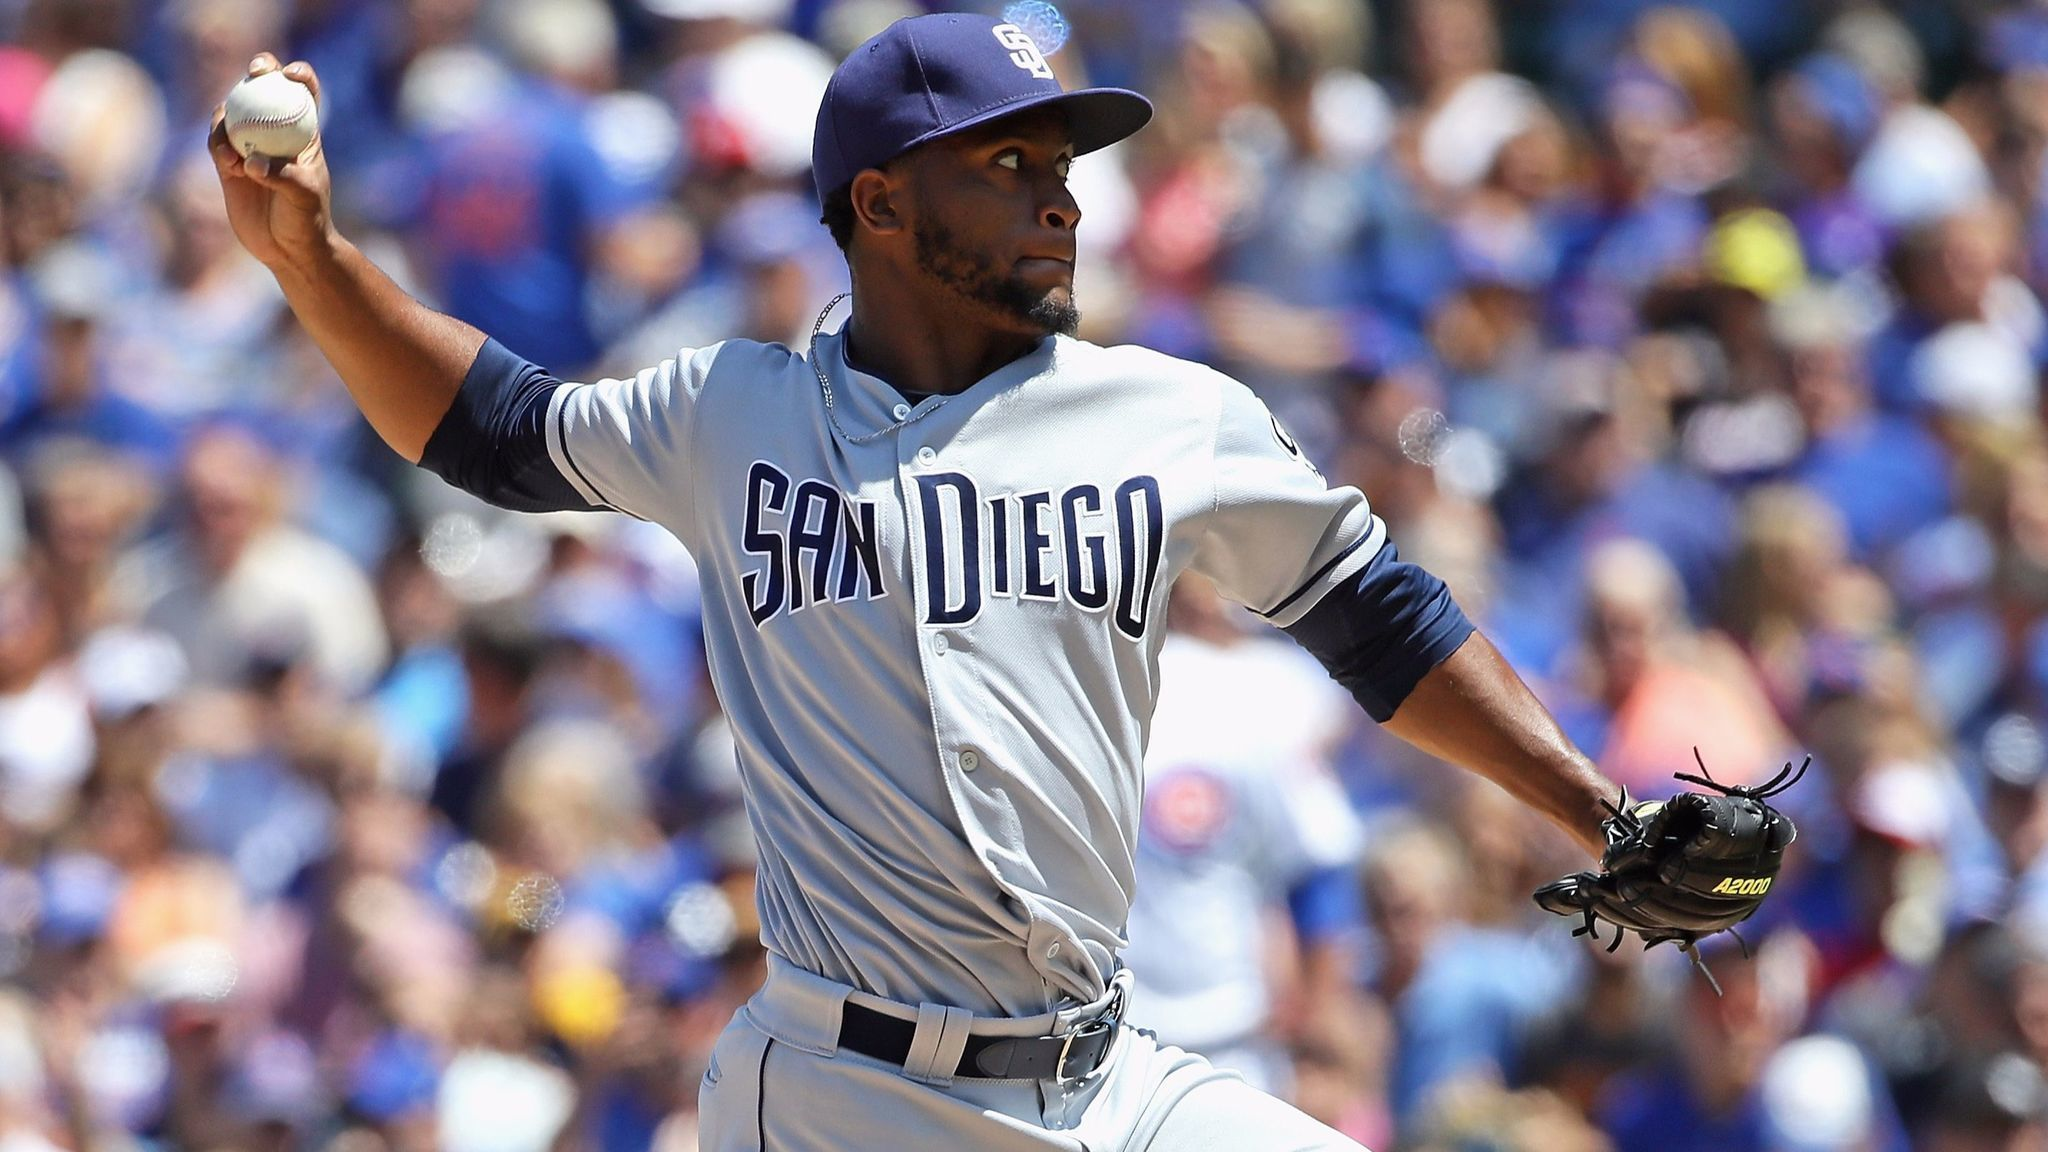 Sd-sp-padres-first-pitch-miguel-diaz-20170815